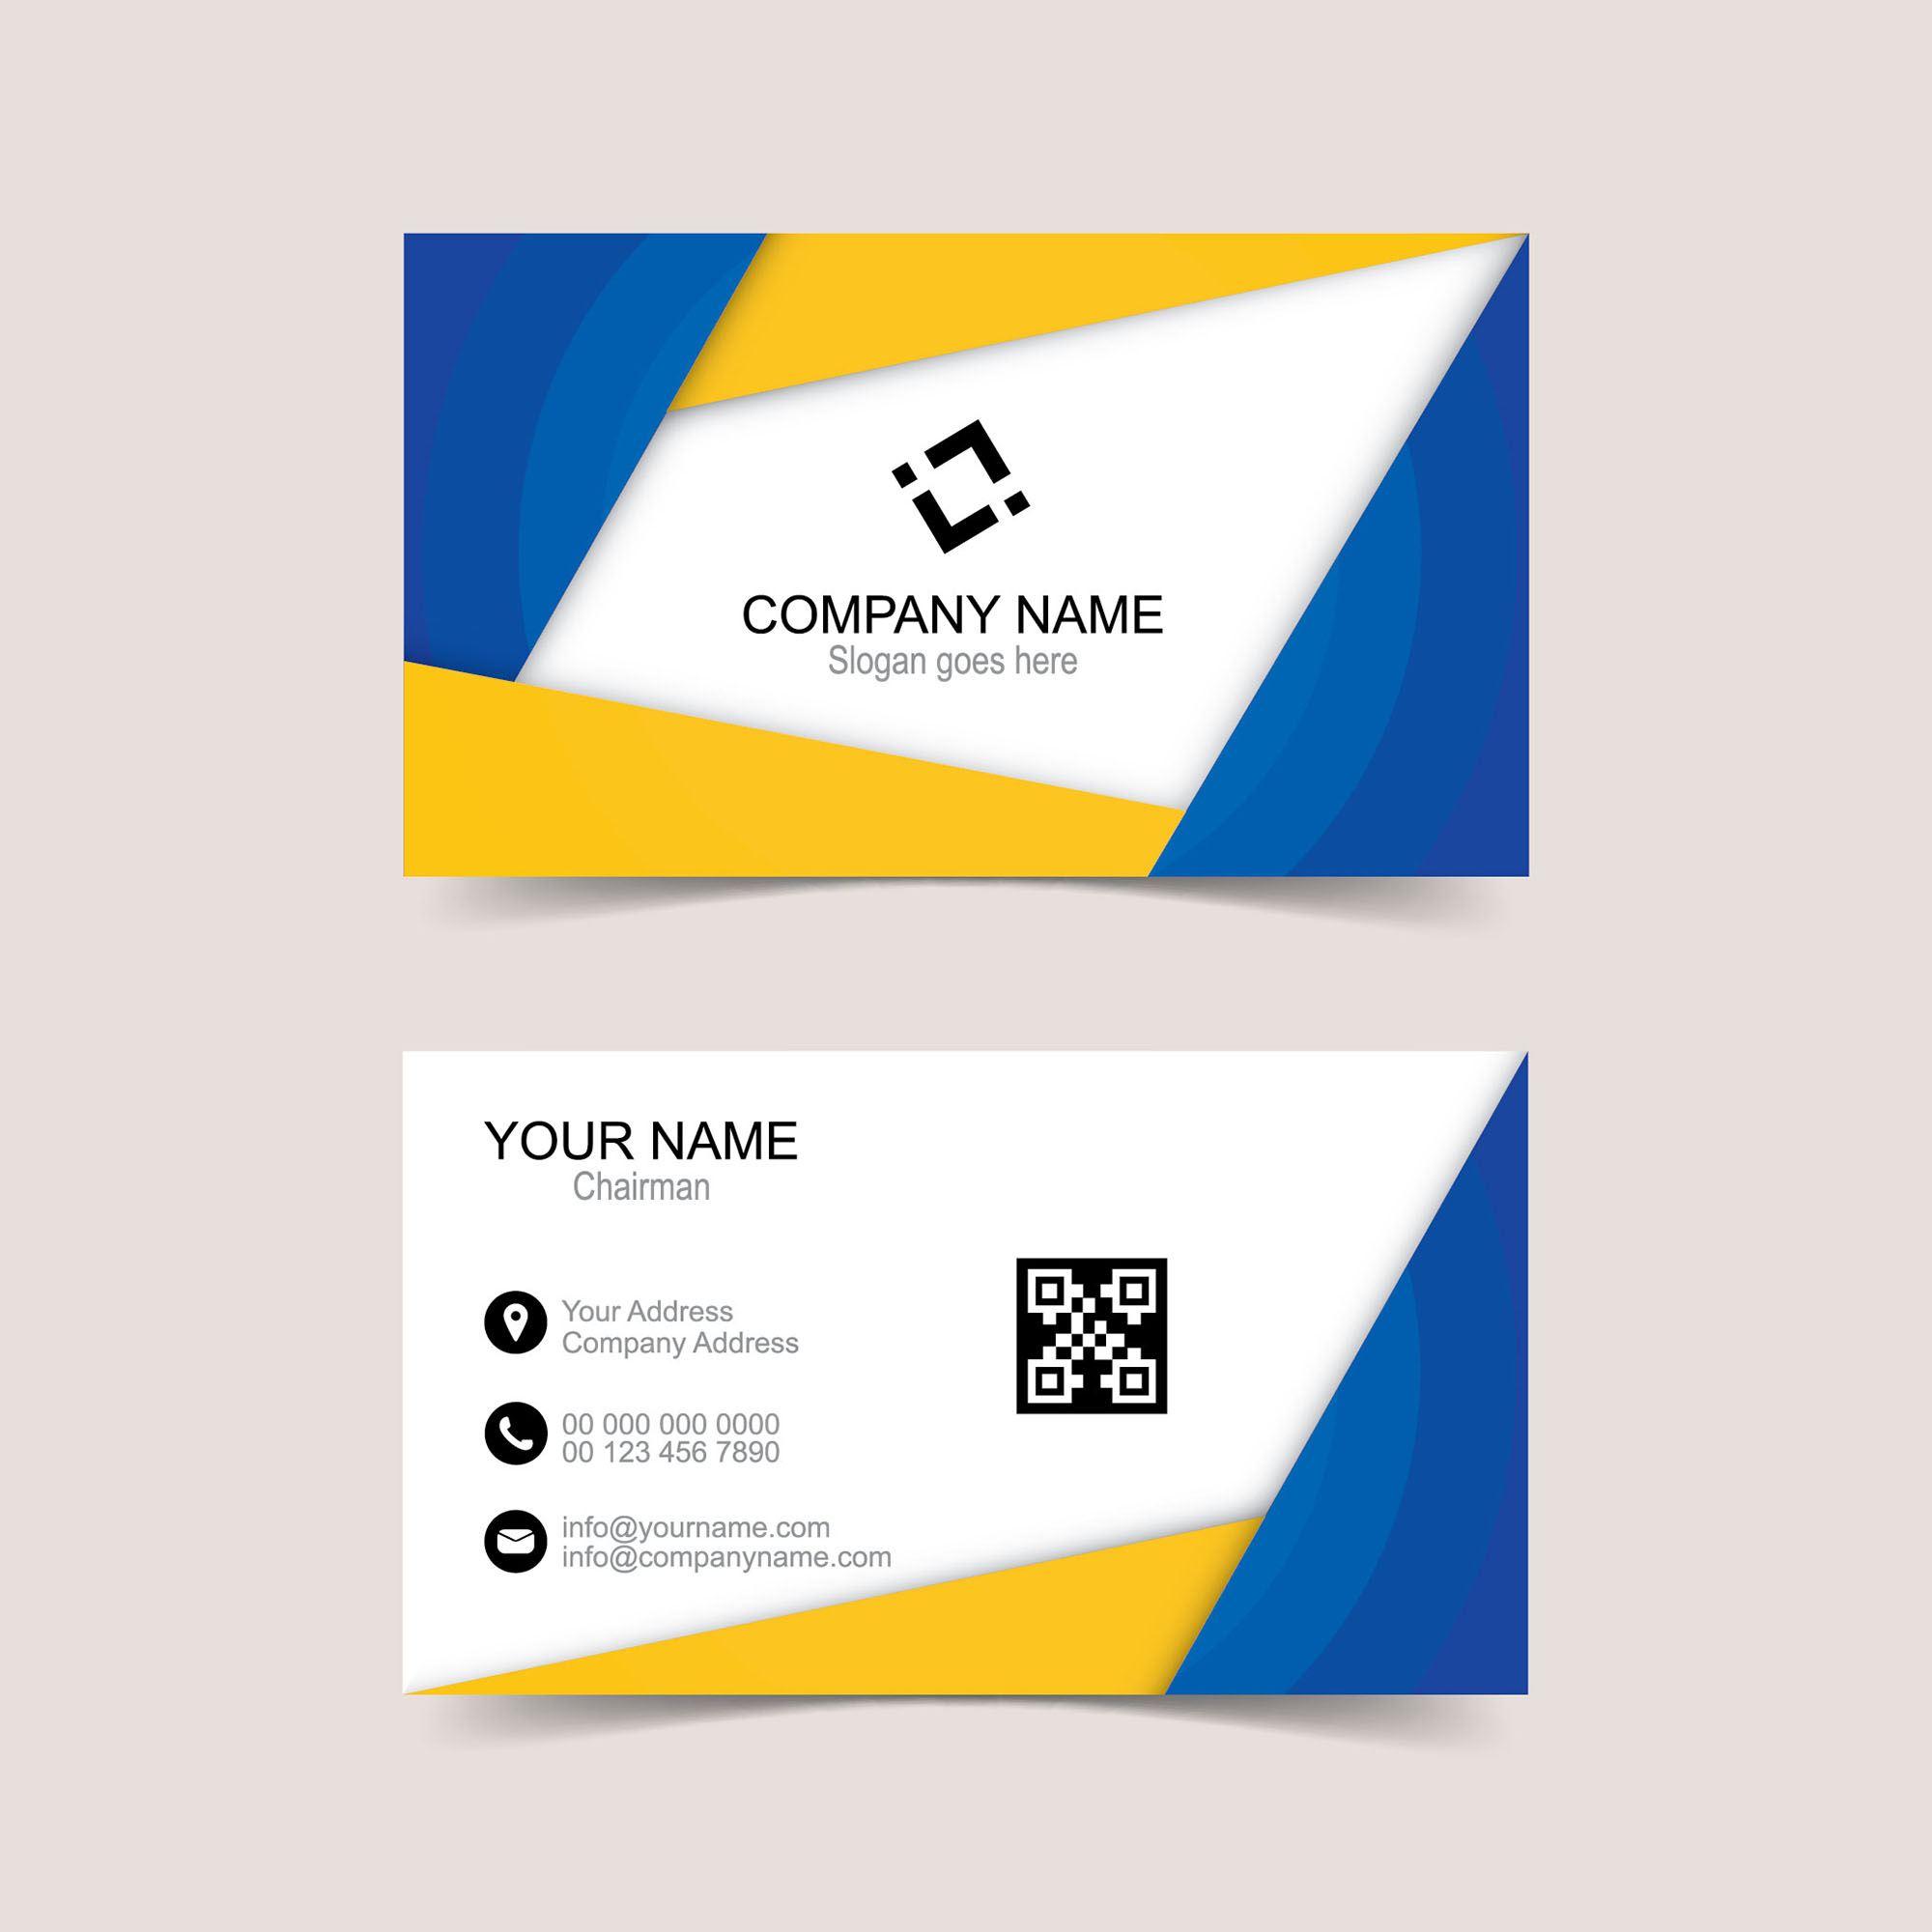 Vector creative business card template free download wisxi business card business cards business card design business card template design templates reheart Image collections